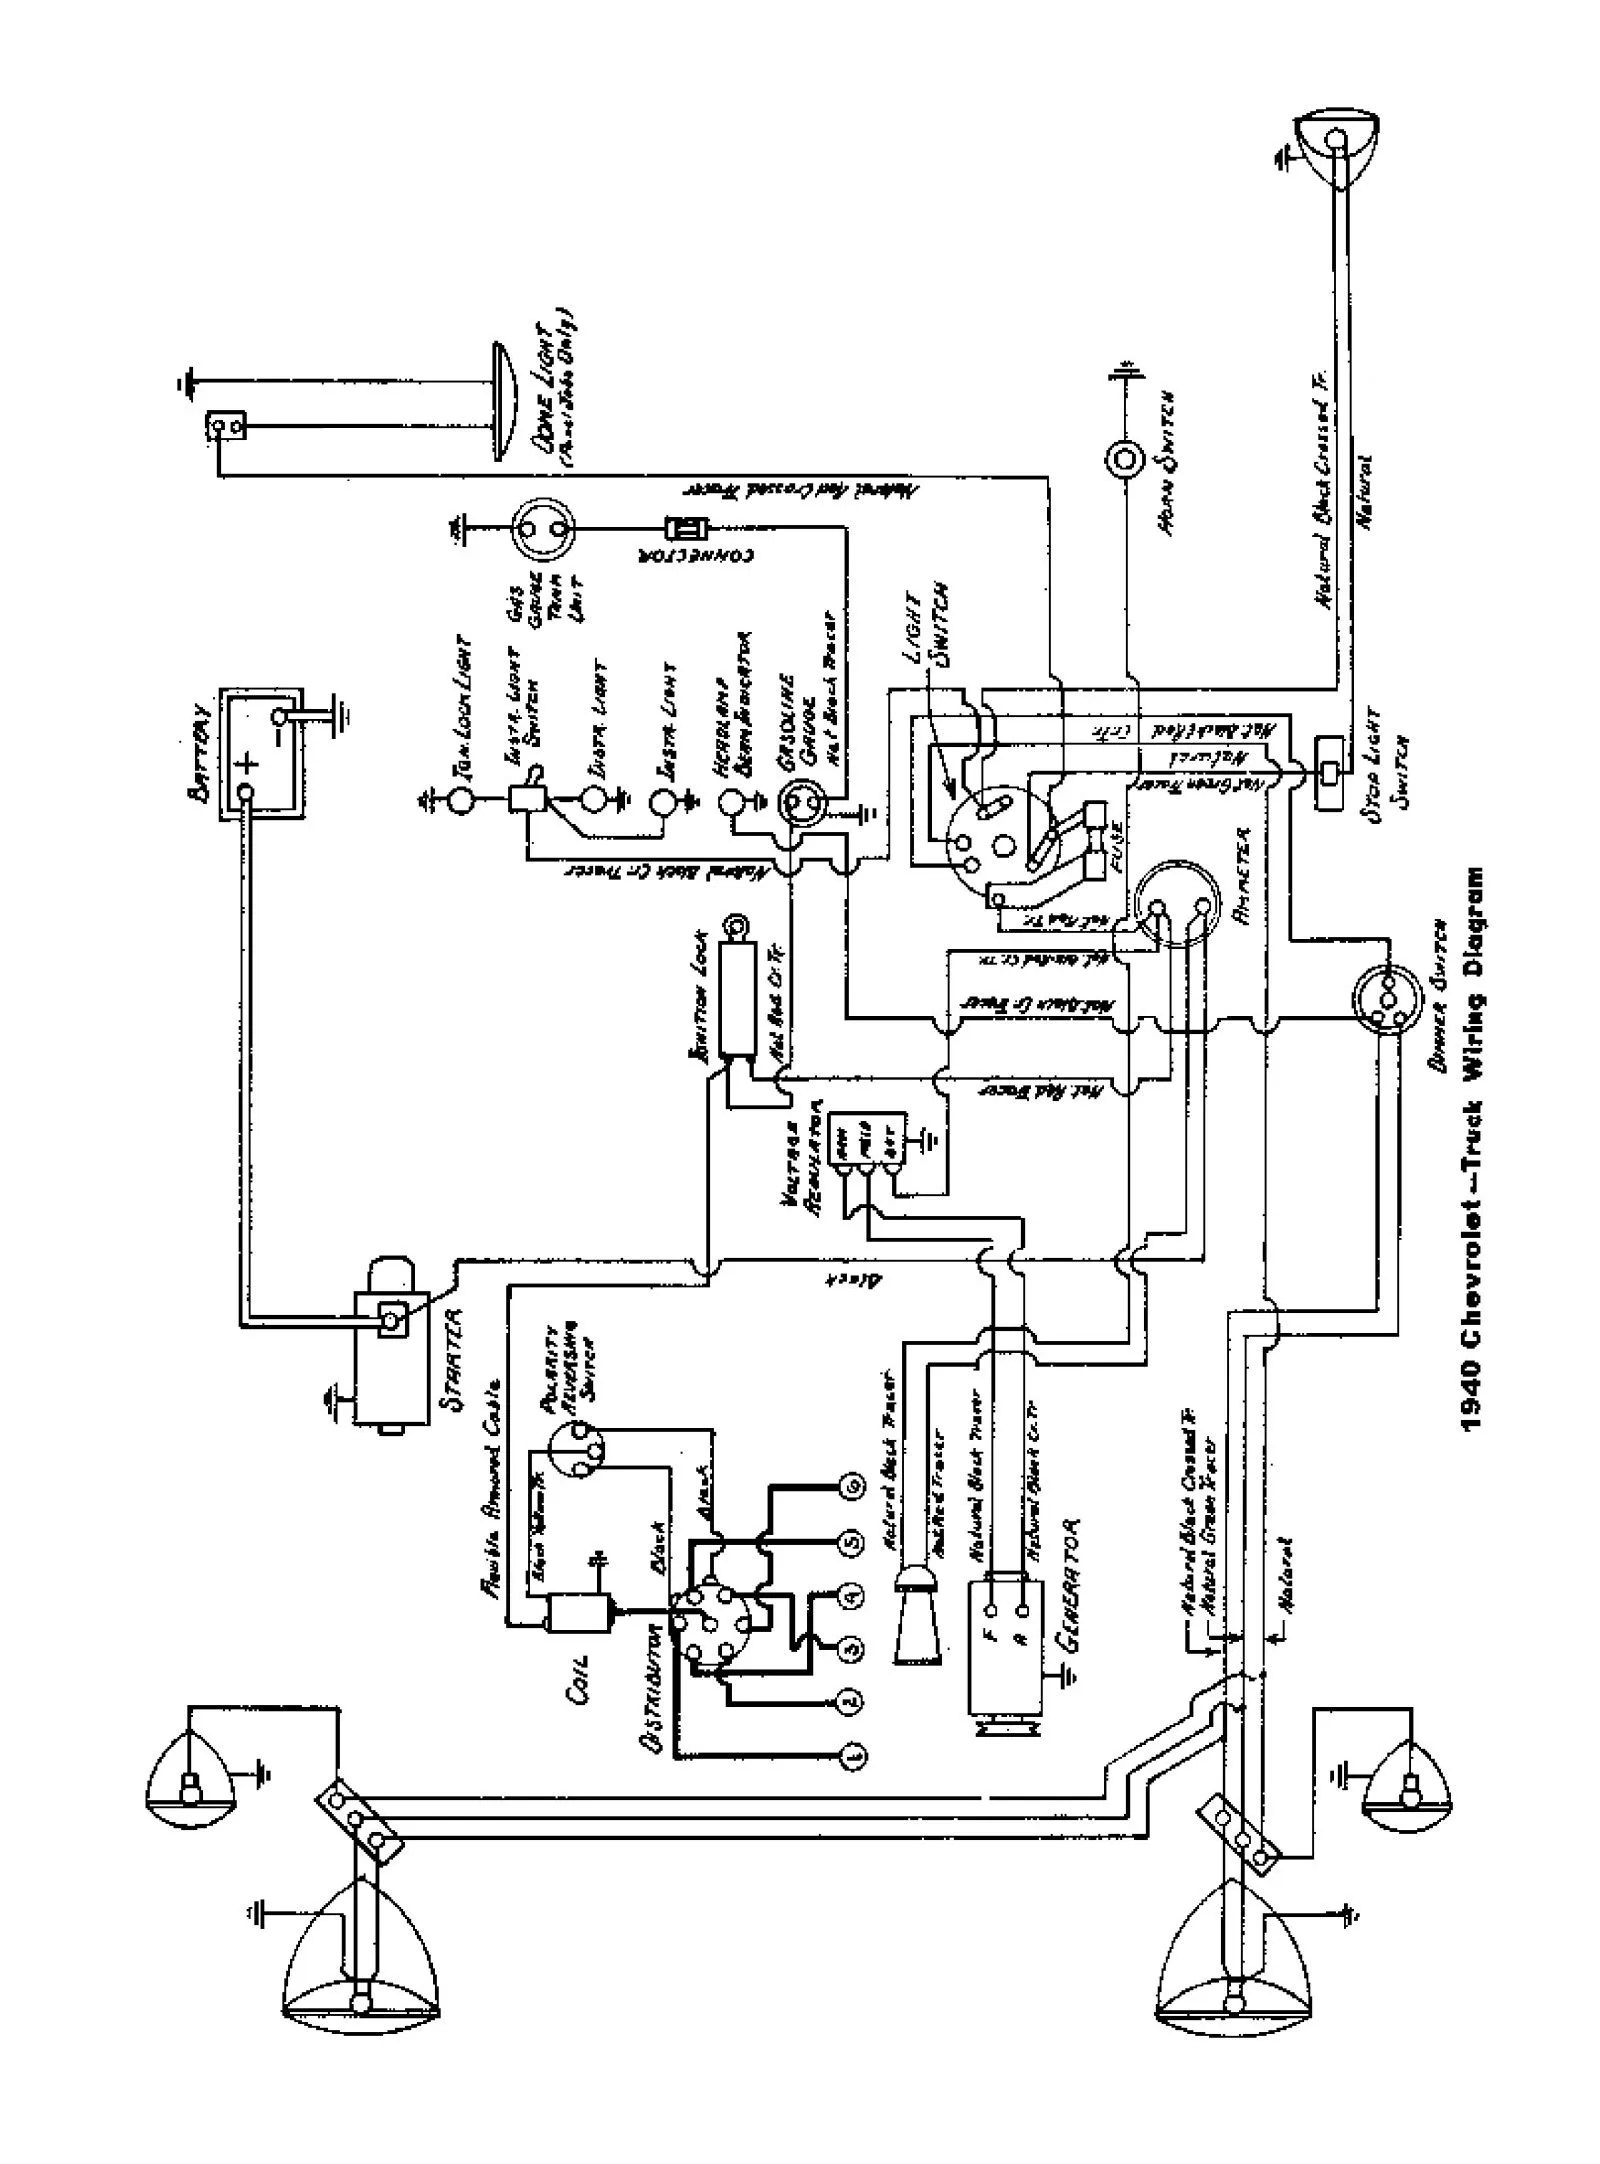 hight resolution of chevy wiring diagrams 2015 chevy wiring diagram 58 chevy wiring diagram